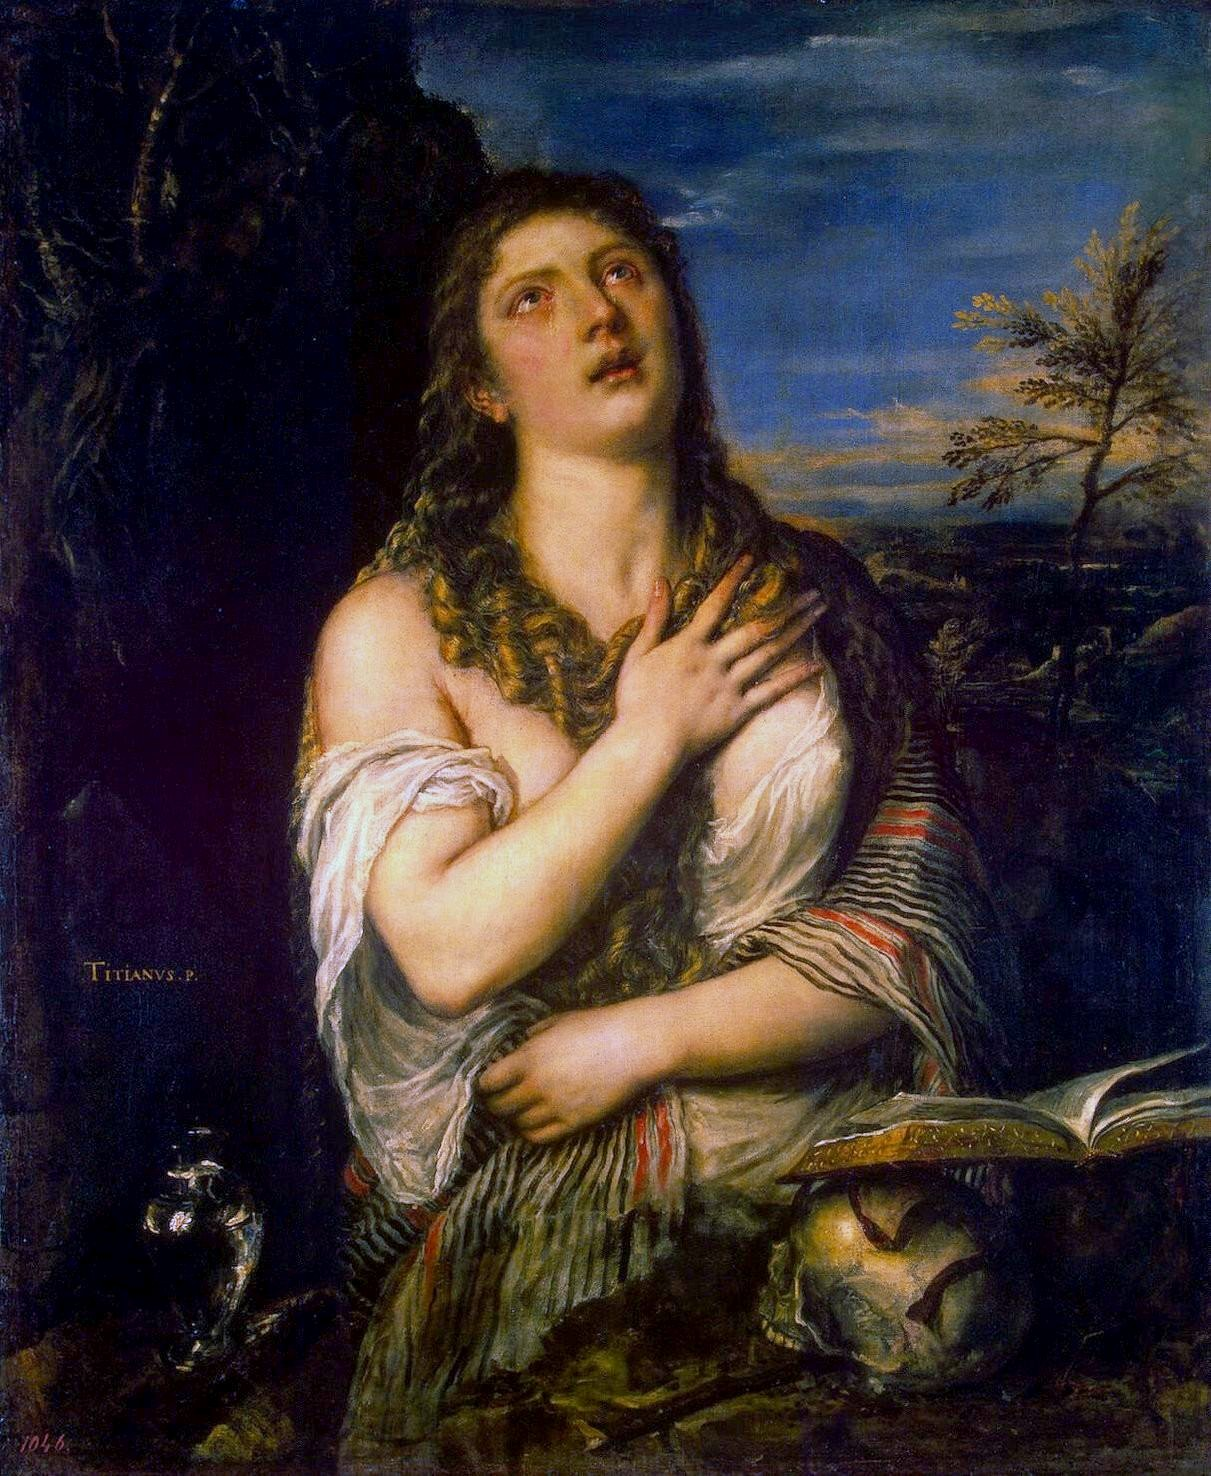 「Titian Mary Magdalene」の画像検索結果